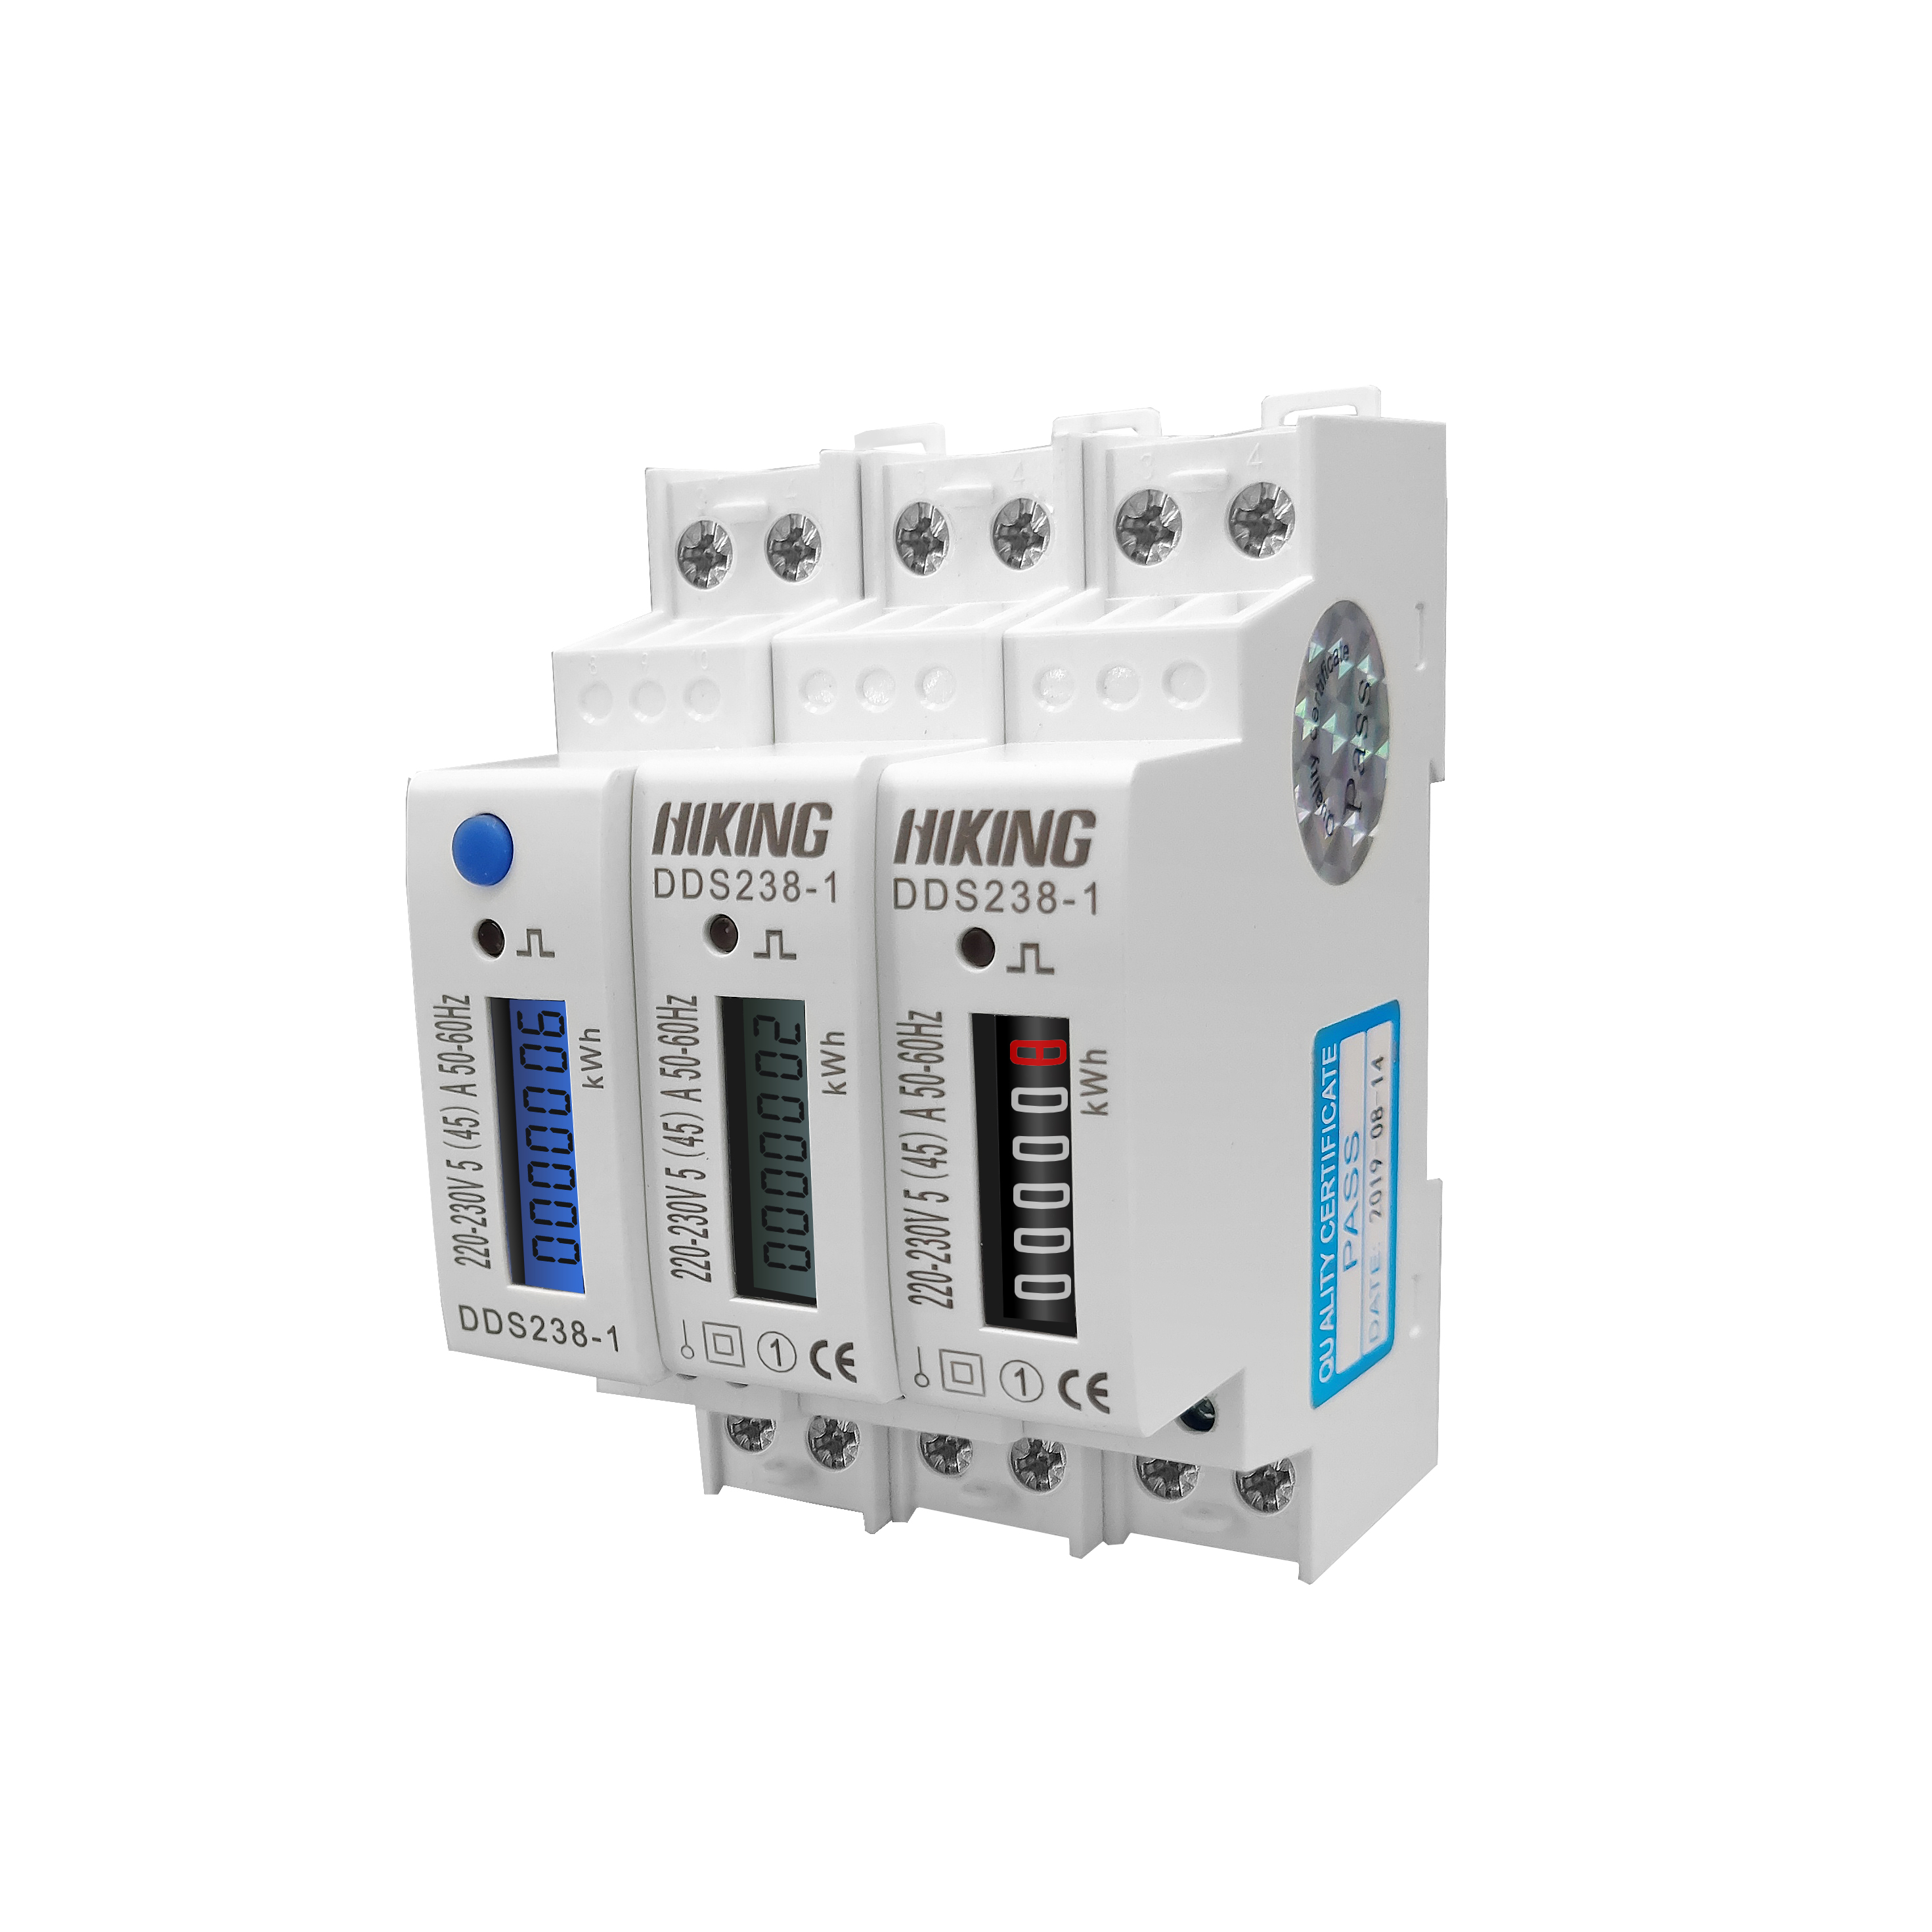 45A 220V 230V 50HZ 60HZ LCD display Single phase Din rail KWH Watt hour din-rail blue backlight energy meter